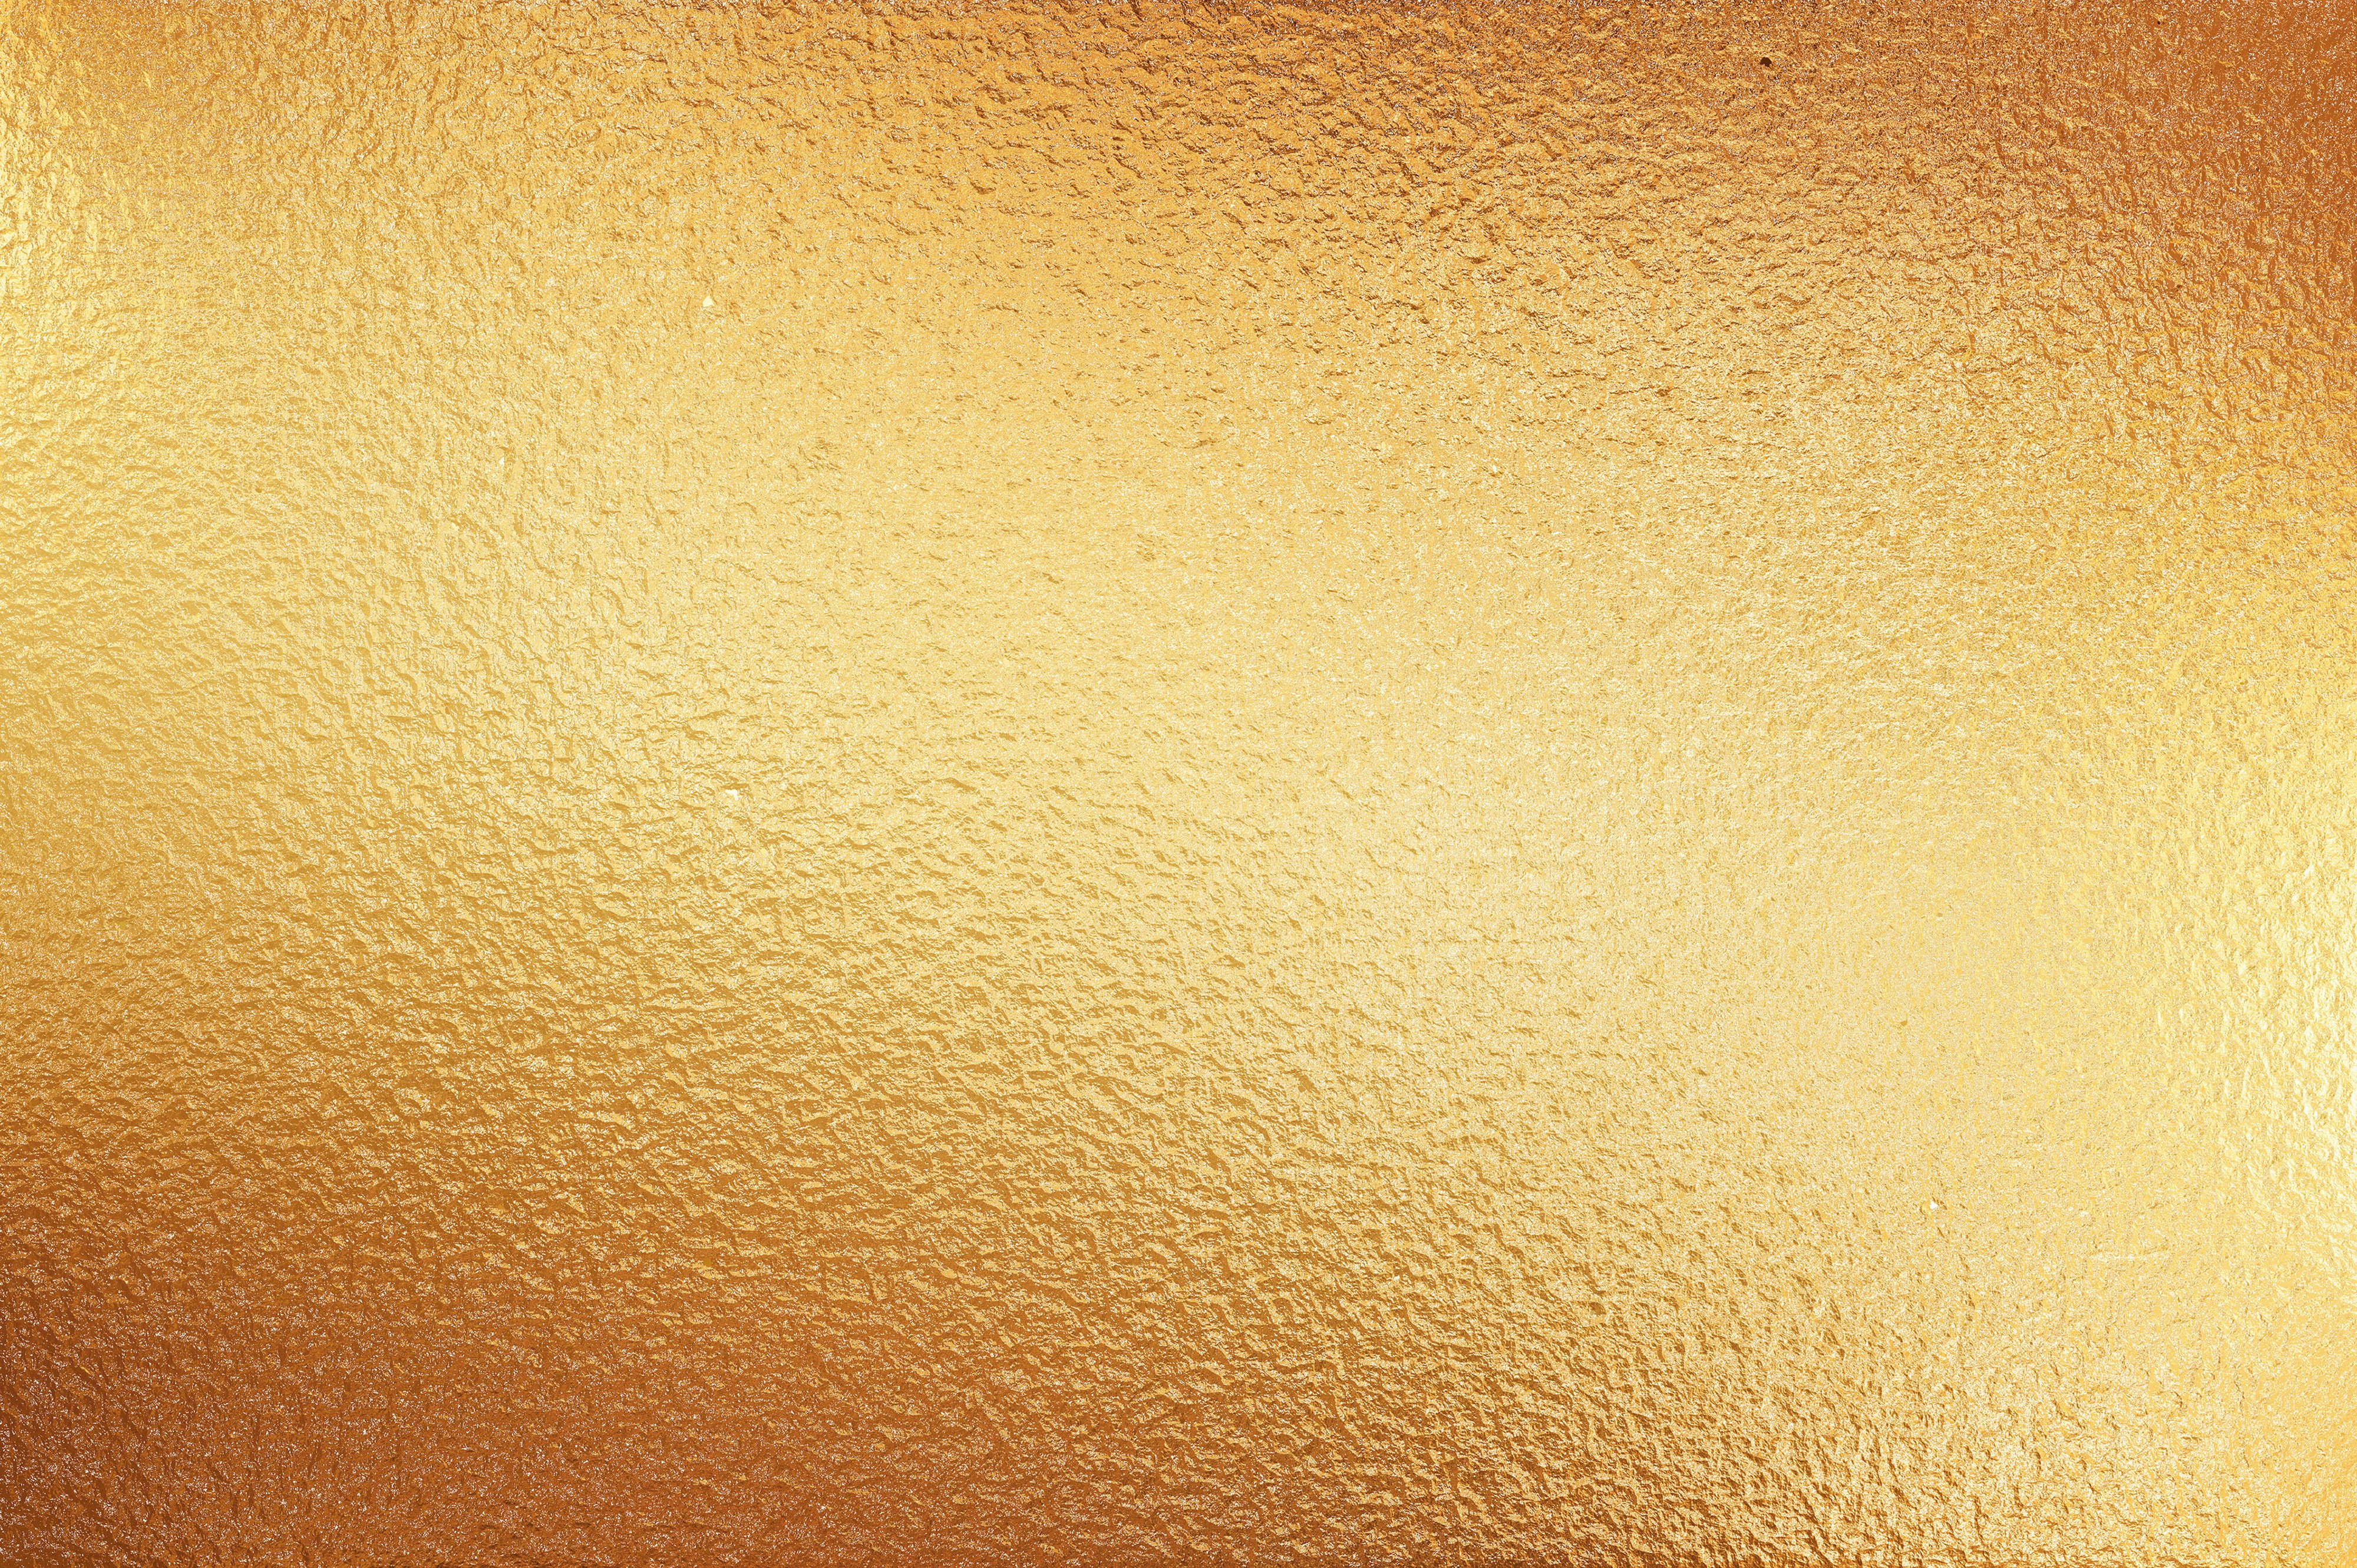 Free Gold Foil Texture A Large Sheet Of Gold Metal Foil Texture